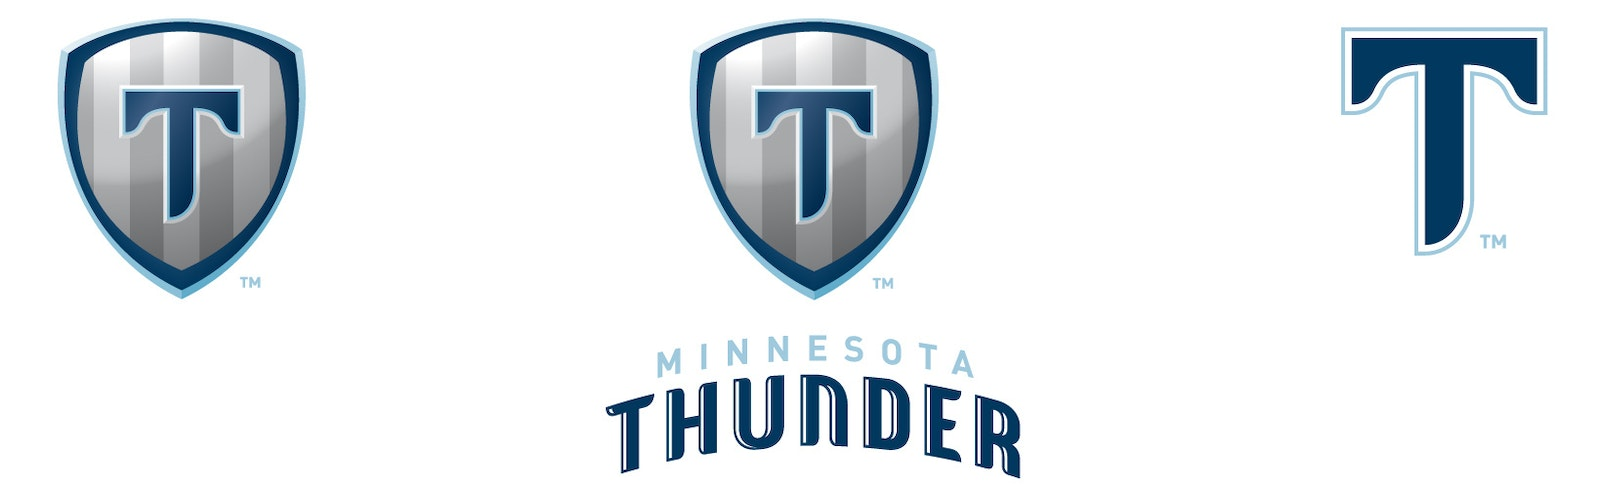 Thunder logo three